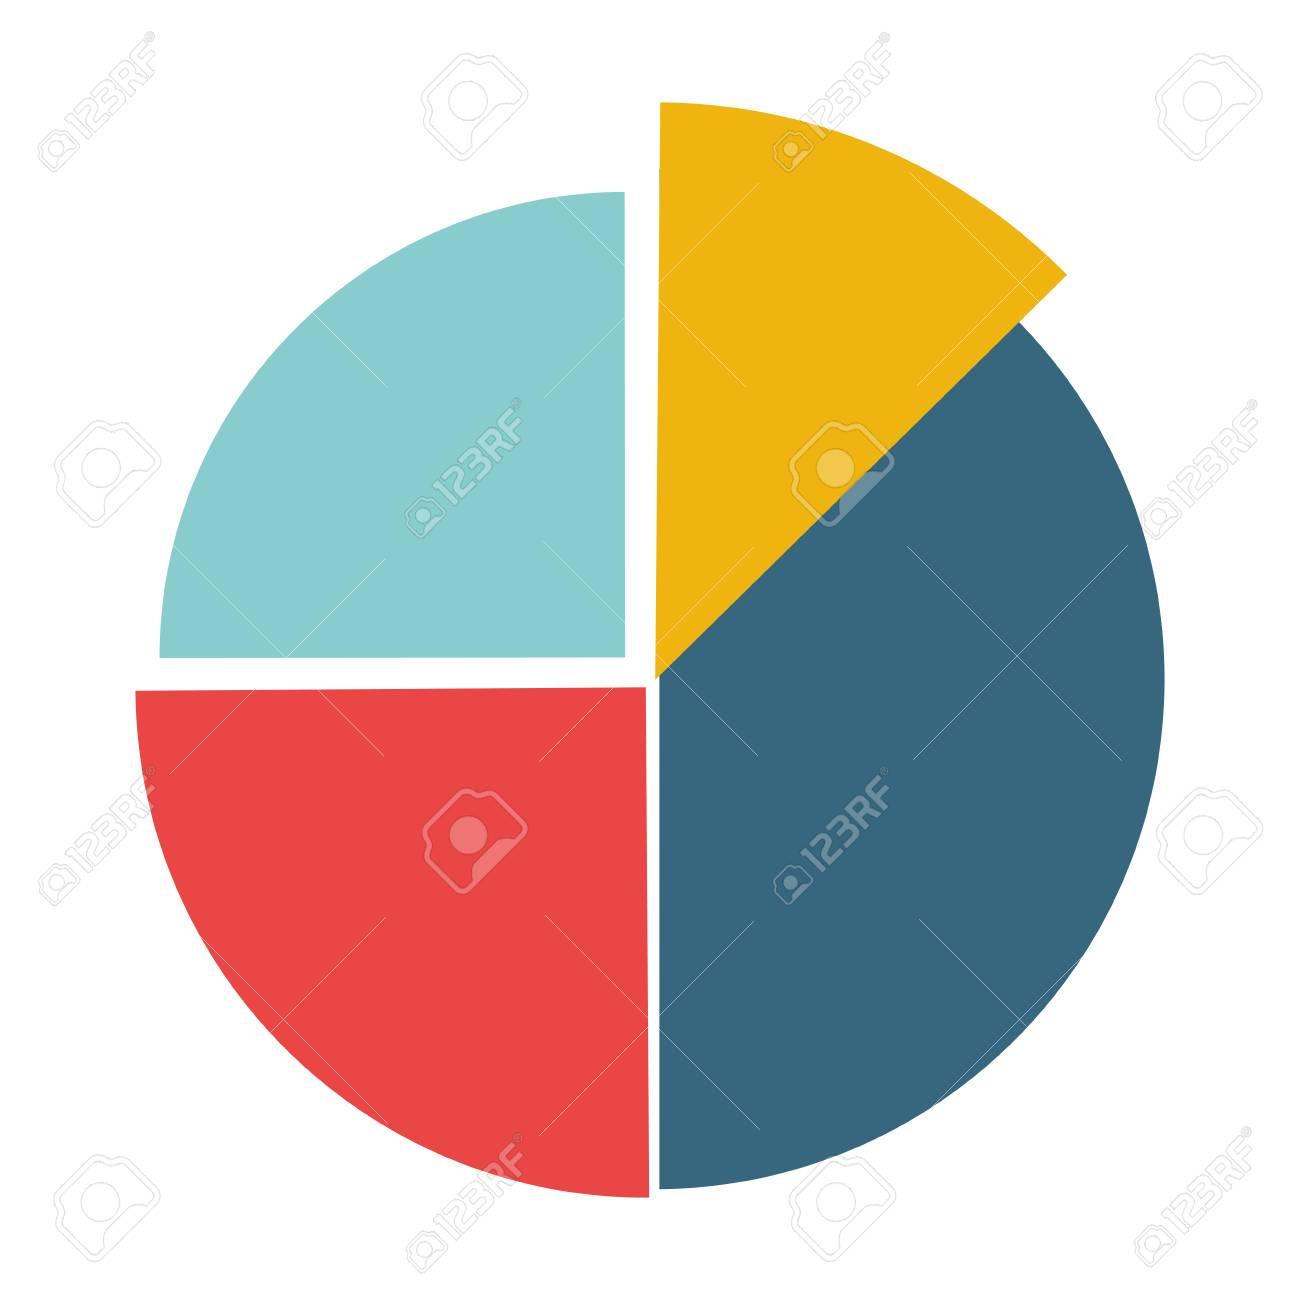 Css animated pie chart image collections free any chart examples css animated pie chart gallery free any chart examples css animated pie chart gallery free any nvjuhfo Images